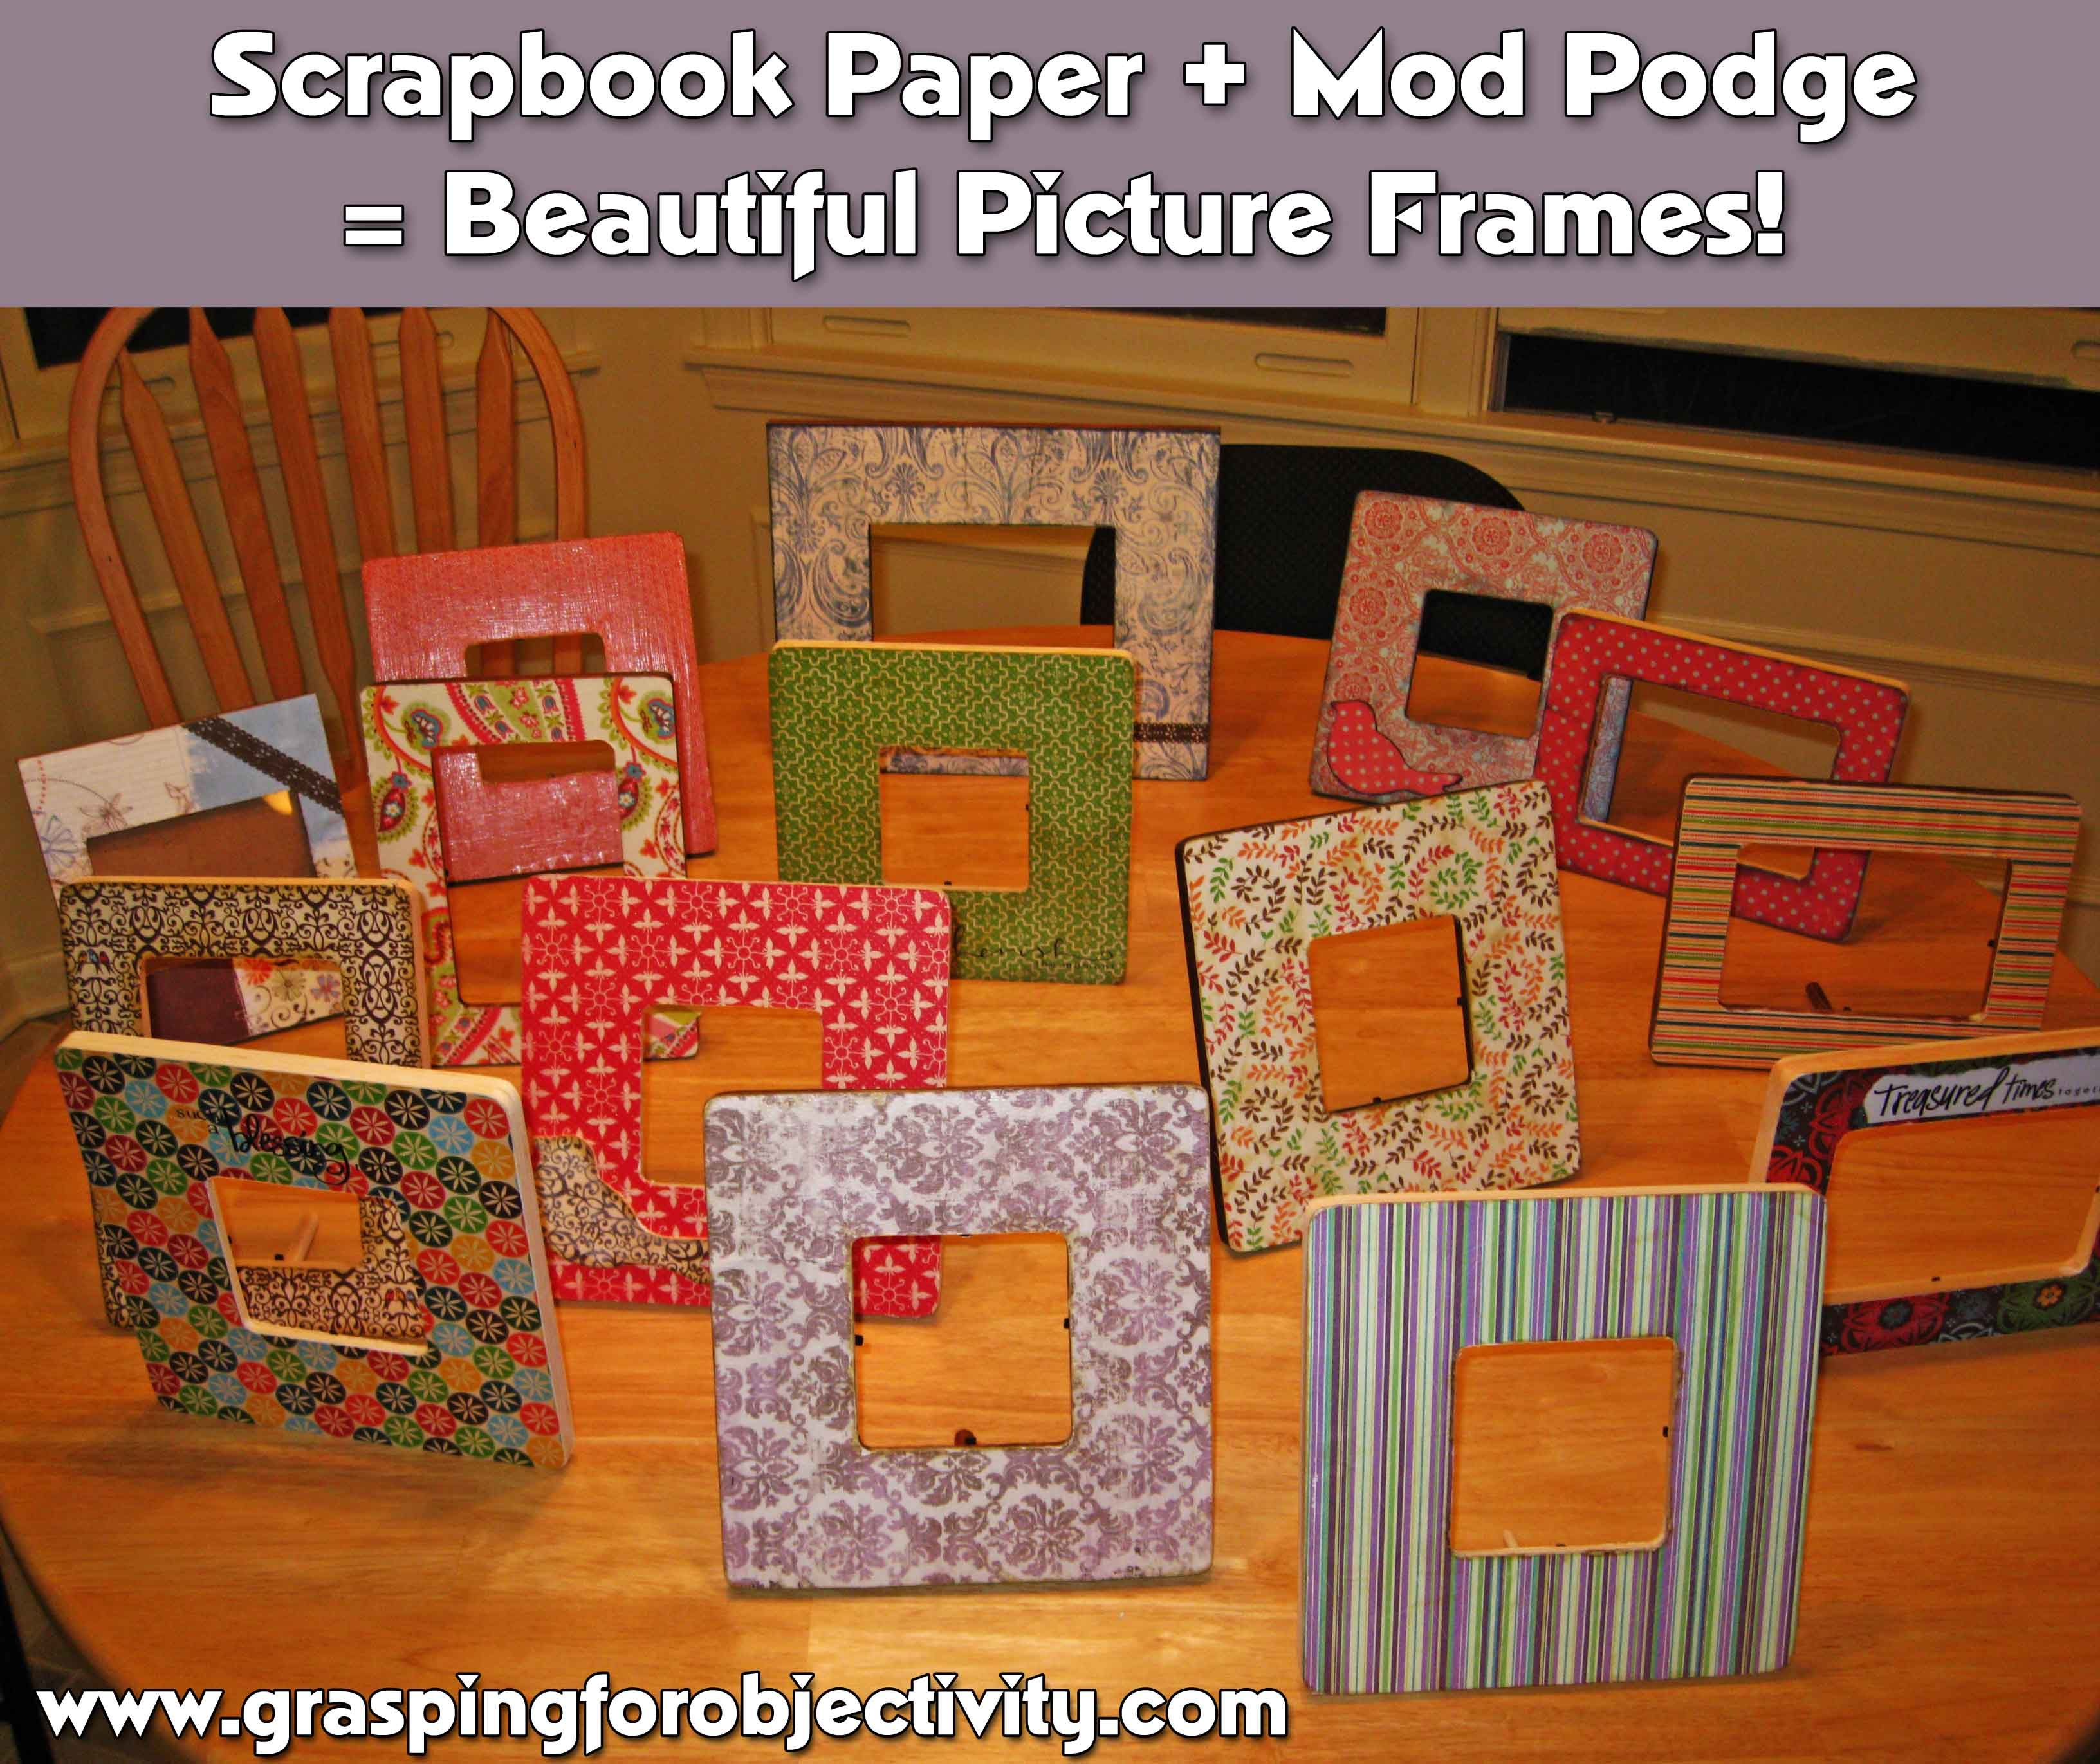 How to make beautiful picture frames with mod podge and scrapbook how to make beautiful picture frames with mod podge and scrapbook paper jeuxipadfo Choice Image